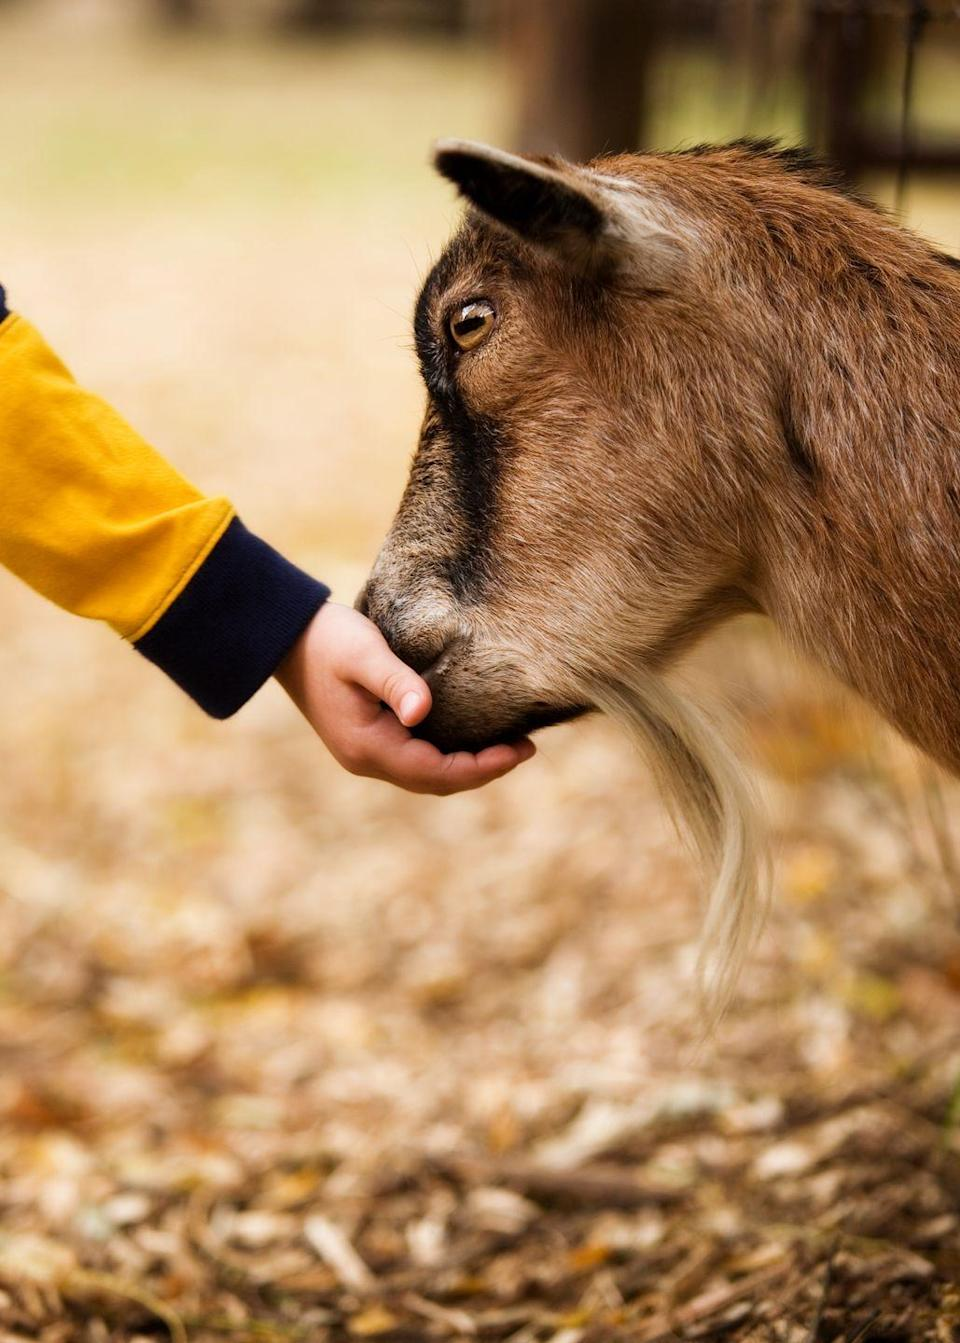 <p>Head to your local petting zoo and take part in an activity that kids (and grown-ups!) of all ages can enjoy.</p>